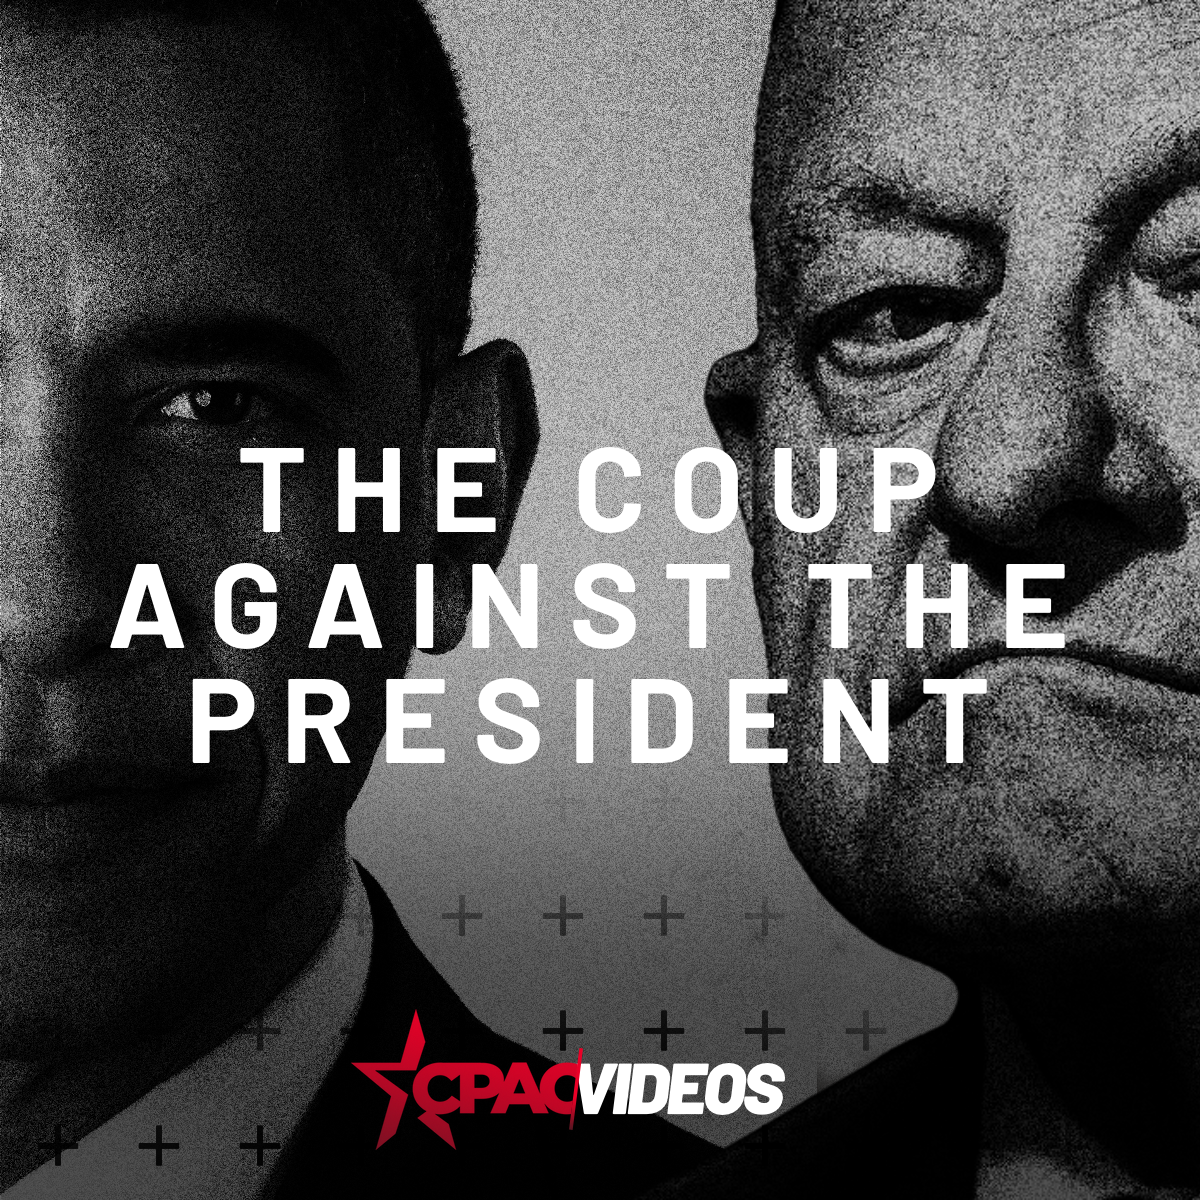 The Coup Against The President